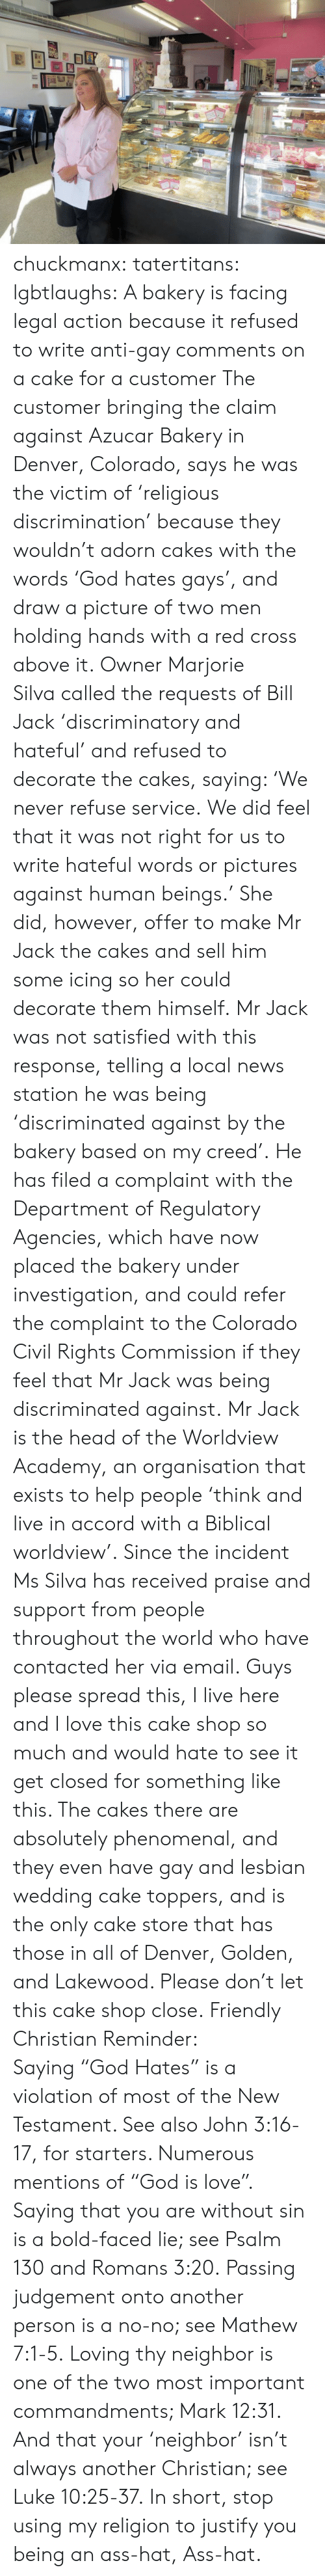 "Ass, Head, and Love: chuckmanx:  tatertitans:  lgbtlaughs:  A bakery is facing legal action because it refused to write anti-gay comments on a cake for a customer The customer bringing the claim against Azucar Bakery in Denver, Colorado, says he was the victim of 'religious discrimination' because they wouldn't adorn cakes with the words 'God hates gays', and draw a picture of two men holding hands with a red cross above it. Owner Marjorie Silva called the requests of Bill Jack 'discriminatory and hateful' and refused to decorate the cakes, saying: 'We never refuse service. We did feel that it was not right for us to write hateful words or pictures against human beings.' She did, however, offer to make Mr Jack the cakes and sell him some icing so her could decorate them himself. Mr Jack was not satisfied with this response, telling a local news station he was being 'discriminated against by the bakery based on my creed'. He has filed a complaint with the Department of Regulatory Agencies, which have now placed the bakery under investigation, and could refer the complaint to the Colorado Civil Rights Commission if they feel that Mr Jack was being discriminated against. Mr Jack is the head of the Worldview Academy, an organisation that exists to help people 'think and live in accord with a Biblical worldview'. Since the incident Ms Silva has received praise and support from people throughout the world who have contacted her via email.  Guys please spread this, I live here and I love this cake shop so much and would hate to see it get closed for something like this. The cakes there are absolutely phenomenal, and they even have gay and lesbian wedding cake toppers, and is the only cake store that has those in all of Denver, Golden, and Lakewood. Please don't let this cake shop close.  Friendly Christian Reminder: Saying ""God Hates"" is a violation of most of the New Testament. See also John 3:16-17, for starters. Numerous mentions of ""God is love"". Saying that you are without sin is a bold-faced lie; see Psalm 130 and Romans 3:20. Passing judgement onto another person is a no-no; see Mathew 7:1-5. Loving thy neighbor is one of the two most important commandments; Mark 12:31. And that your 'neighbor' isn't always another Christian; see Luke 10:25-37.  In short, stop using my religion to justify you being an ass-hat, Ass-hat."